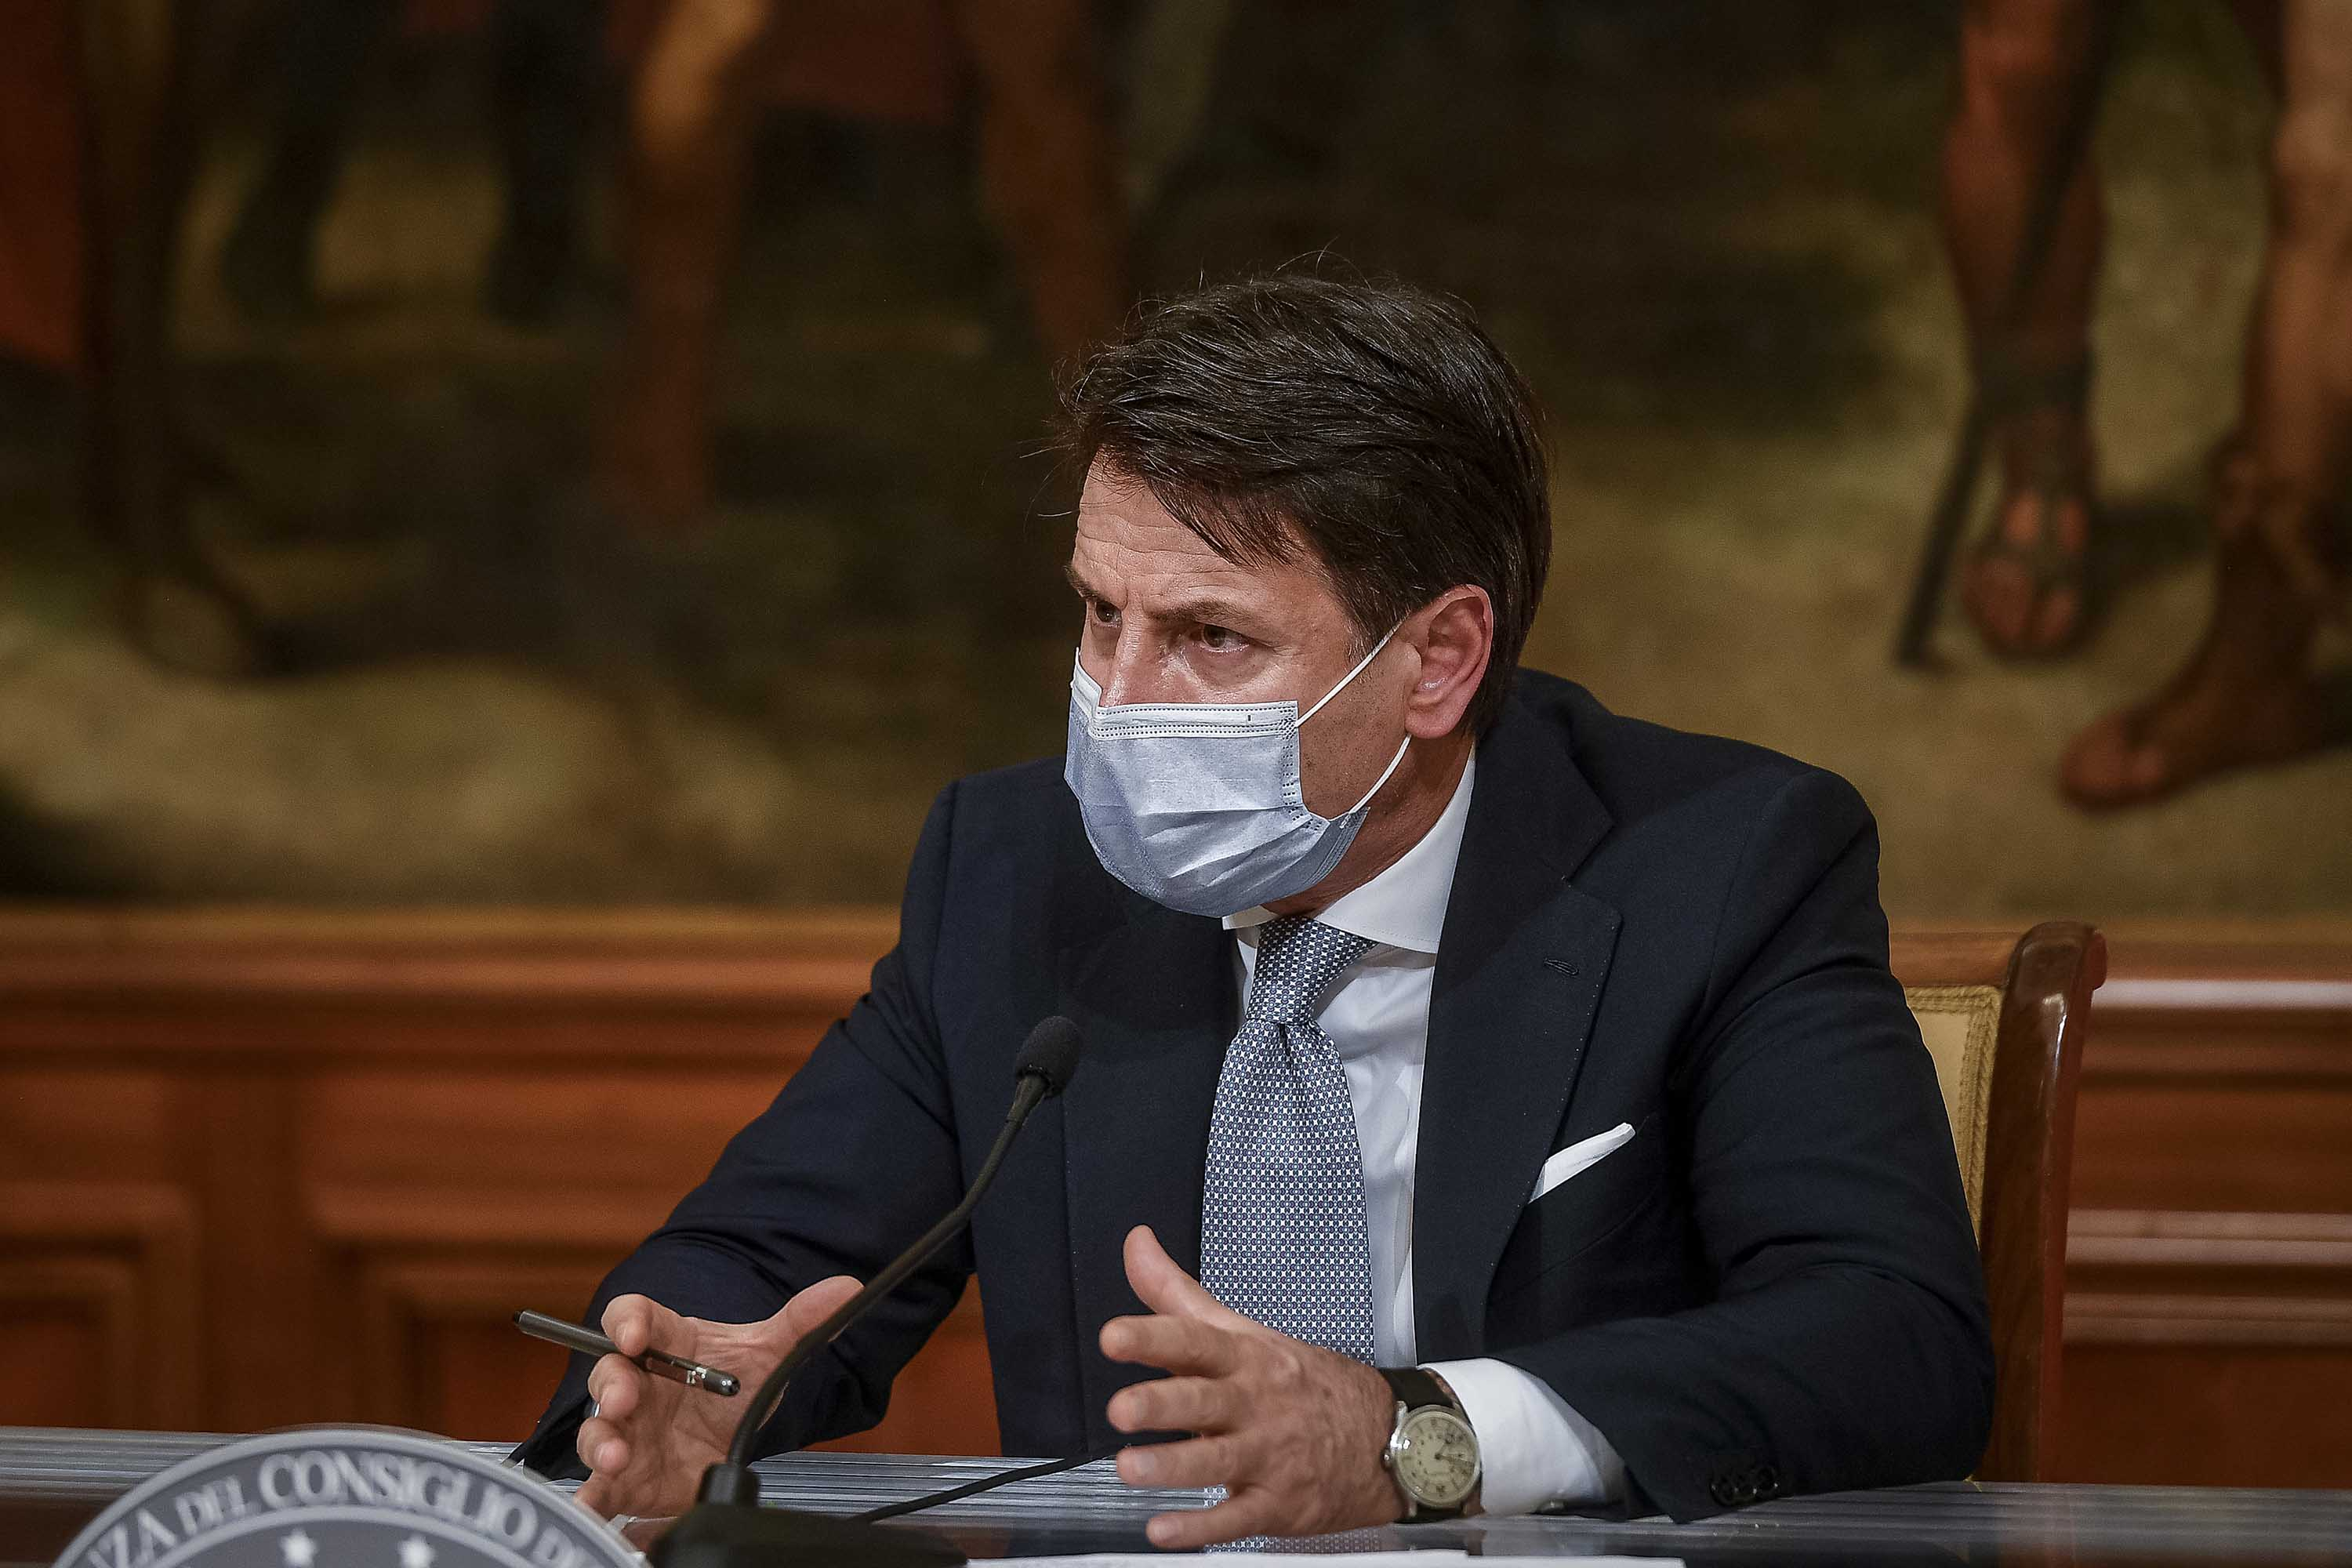 Italian Prime Minister Giuseppe Conte speaks at a press conference on November 4, in Rome, Italy.